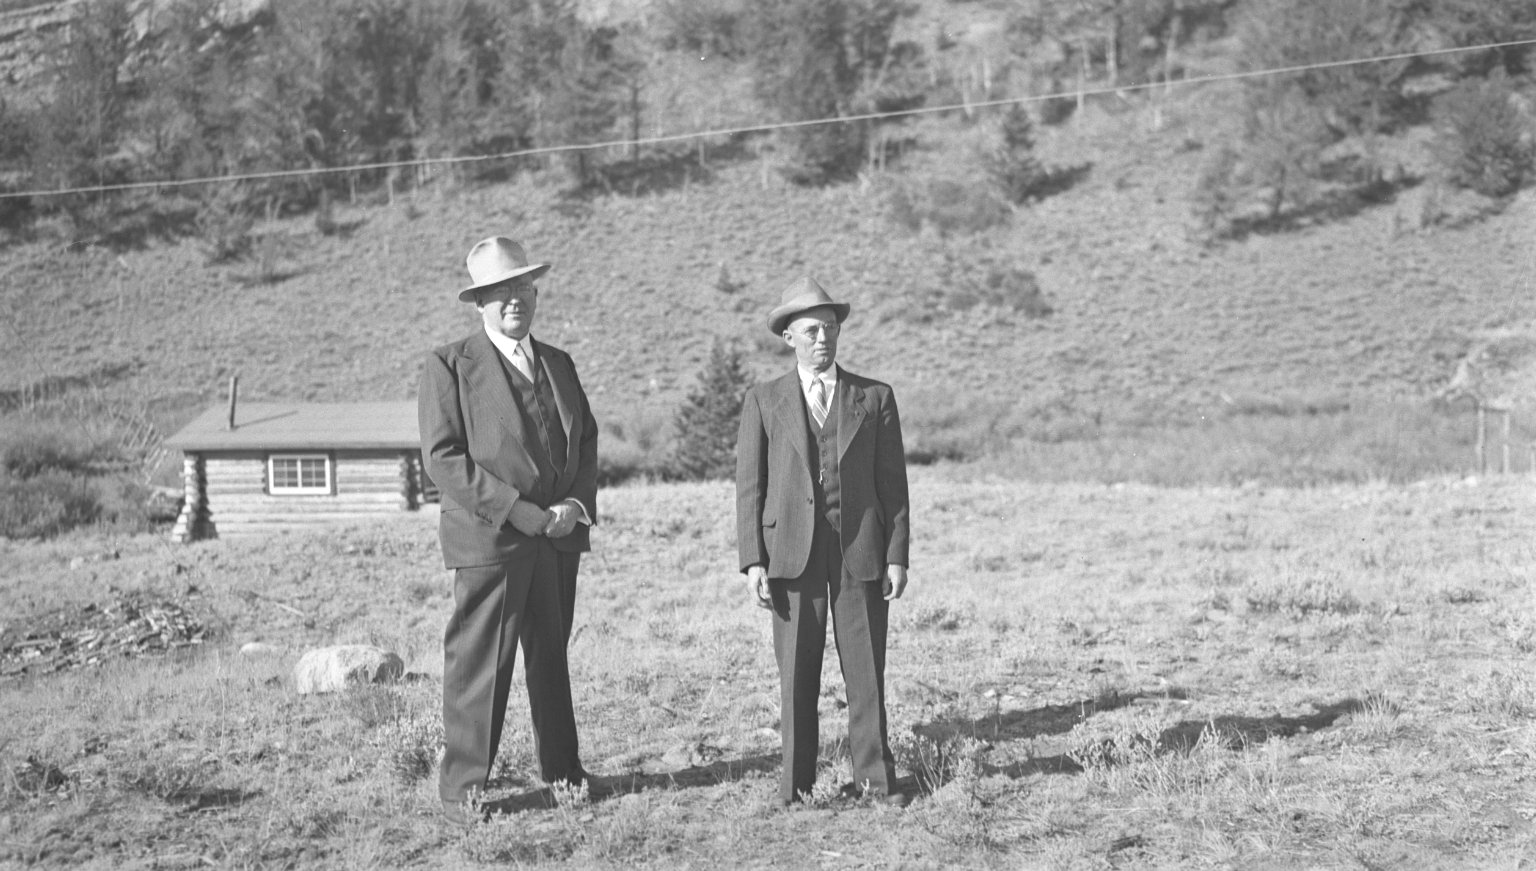 H.H. Nininger (R) and unidentified man